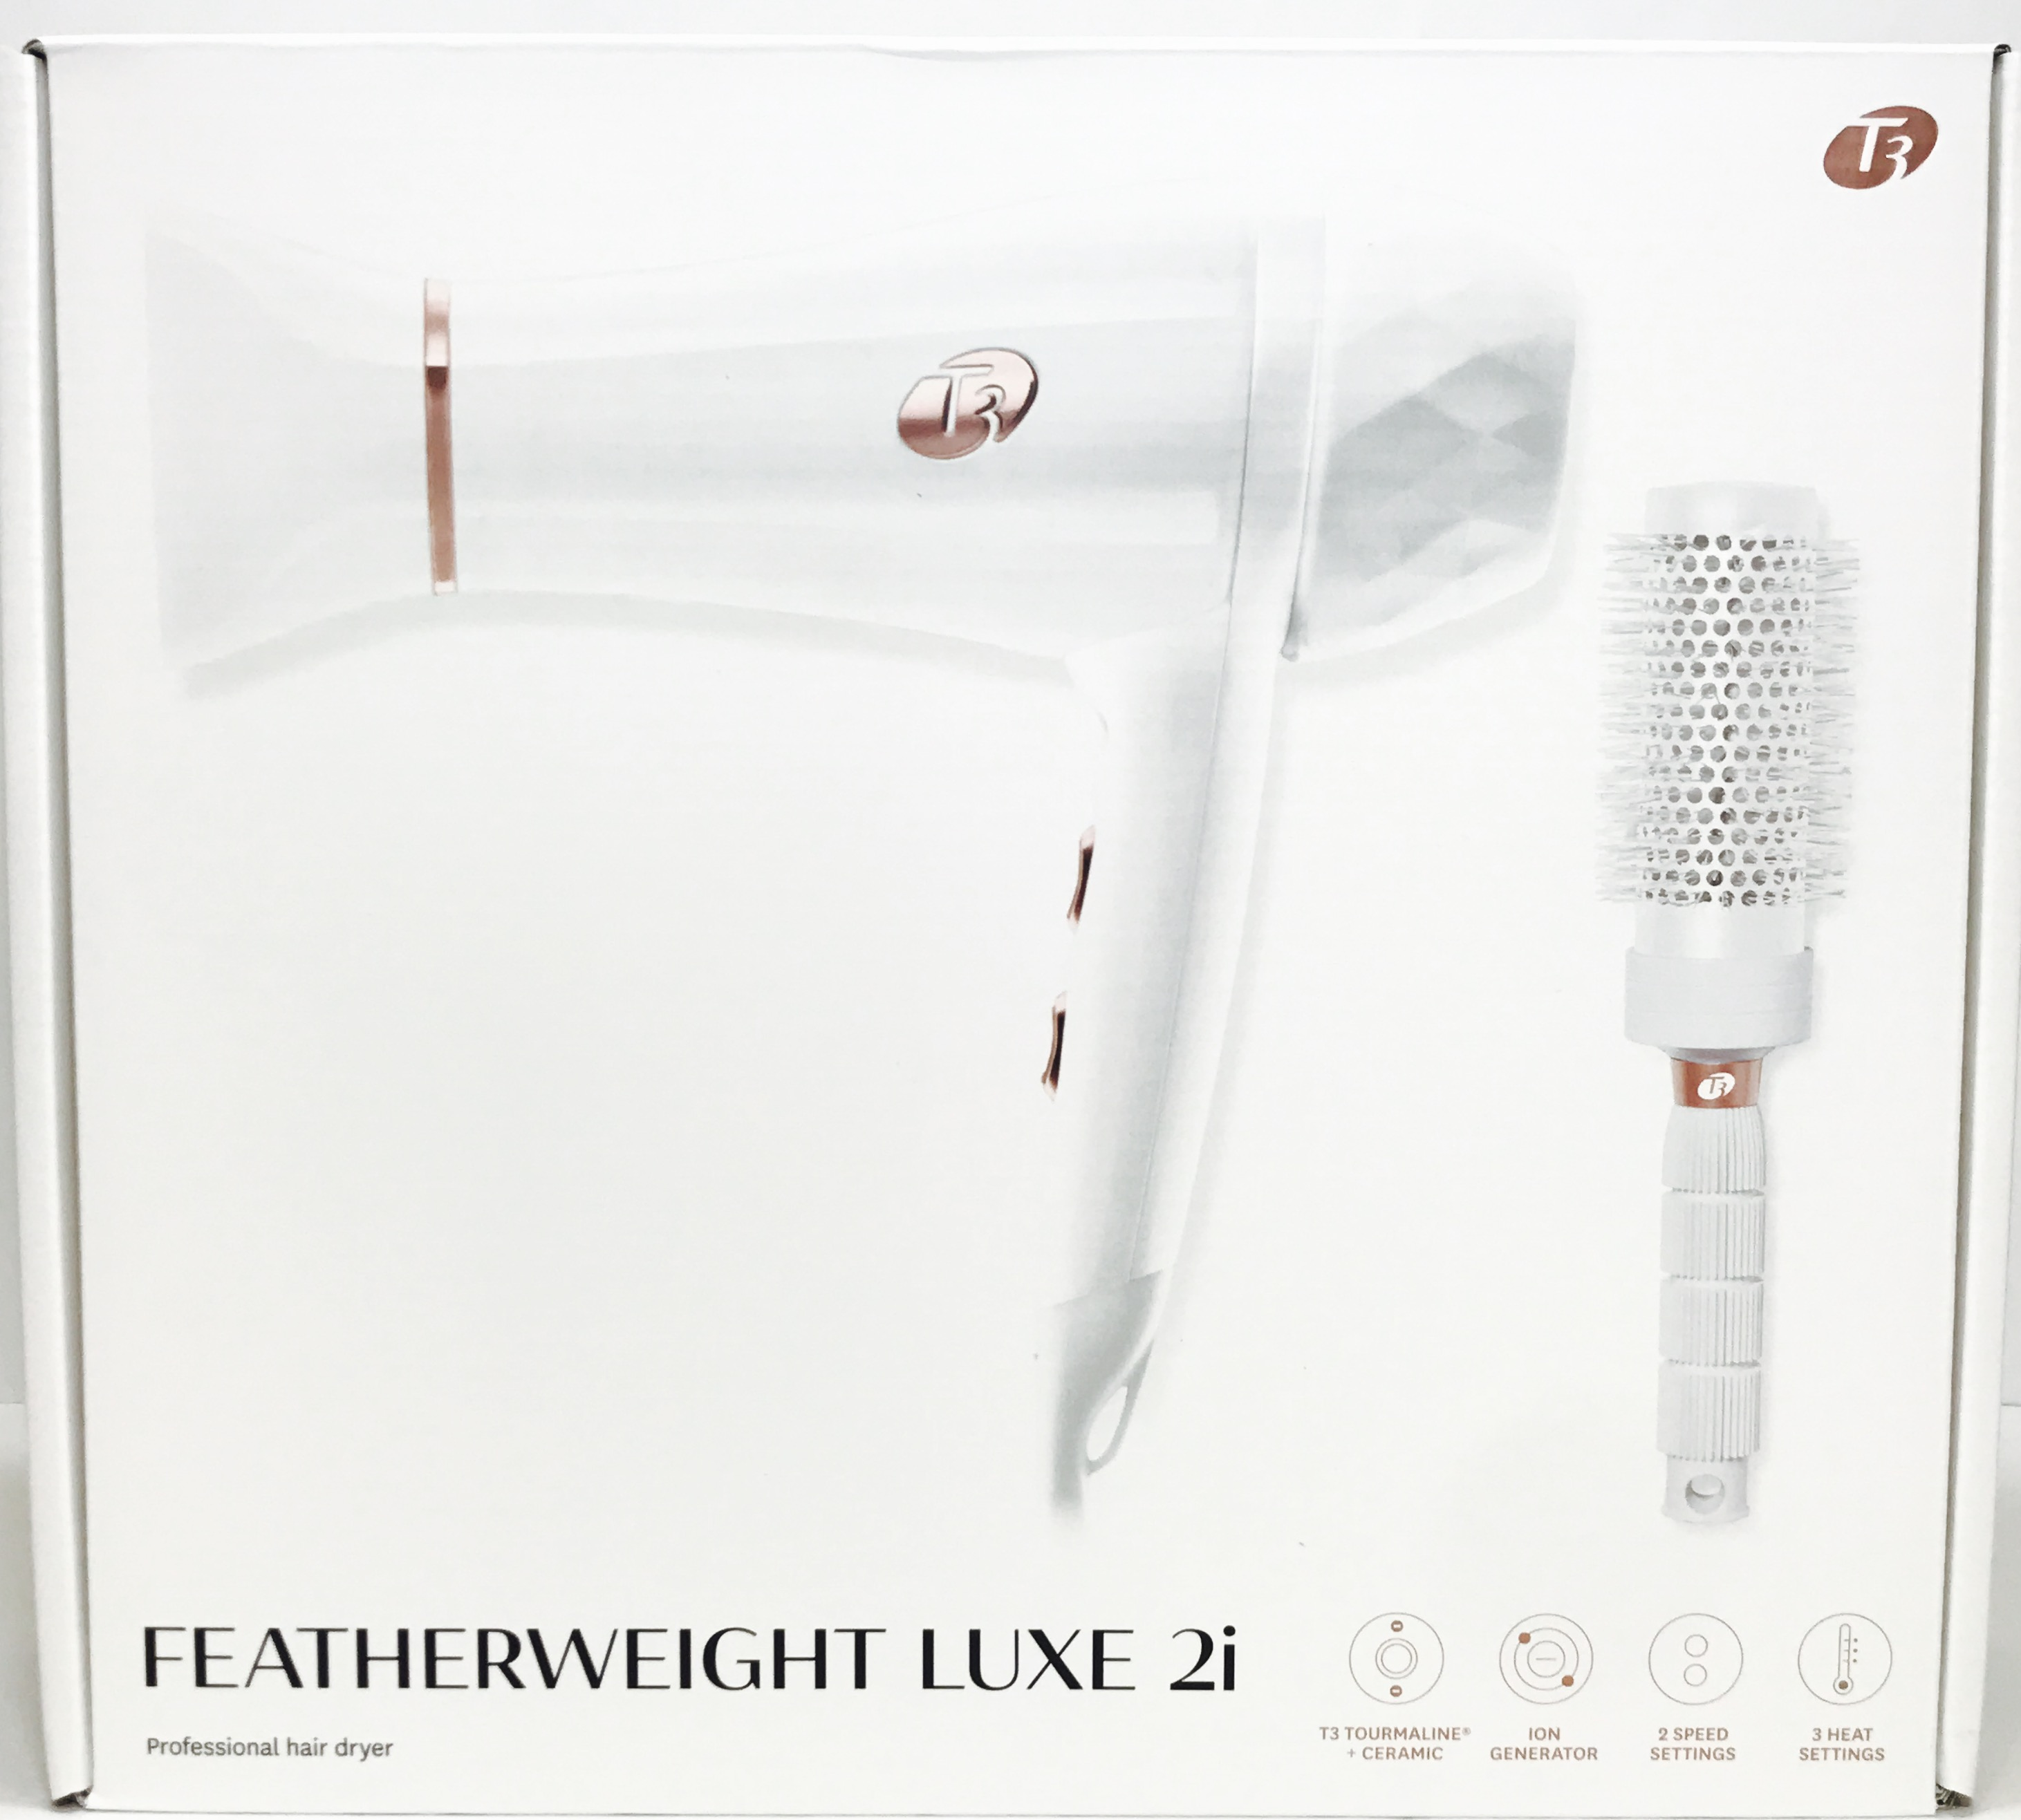 T3 Featherweight 2i Hair Dryer White